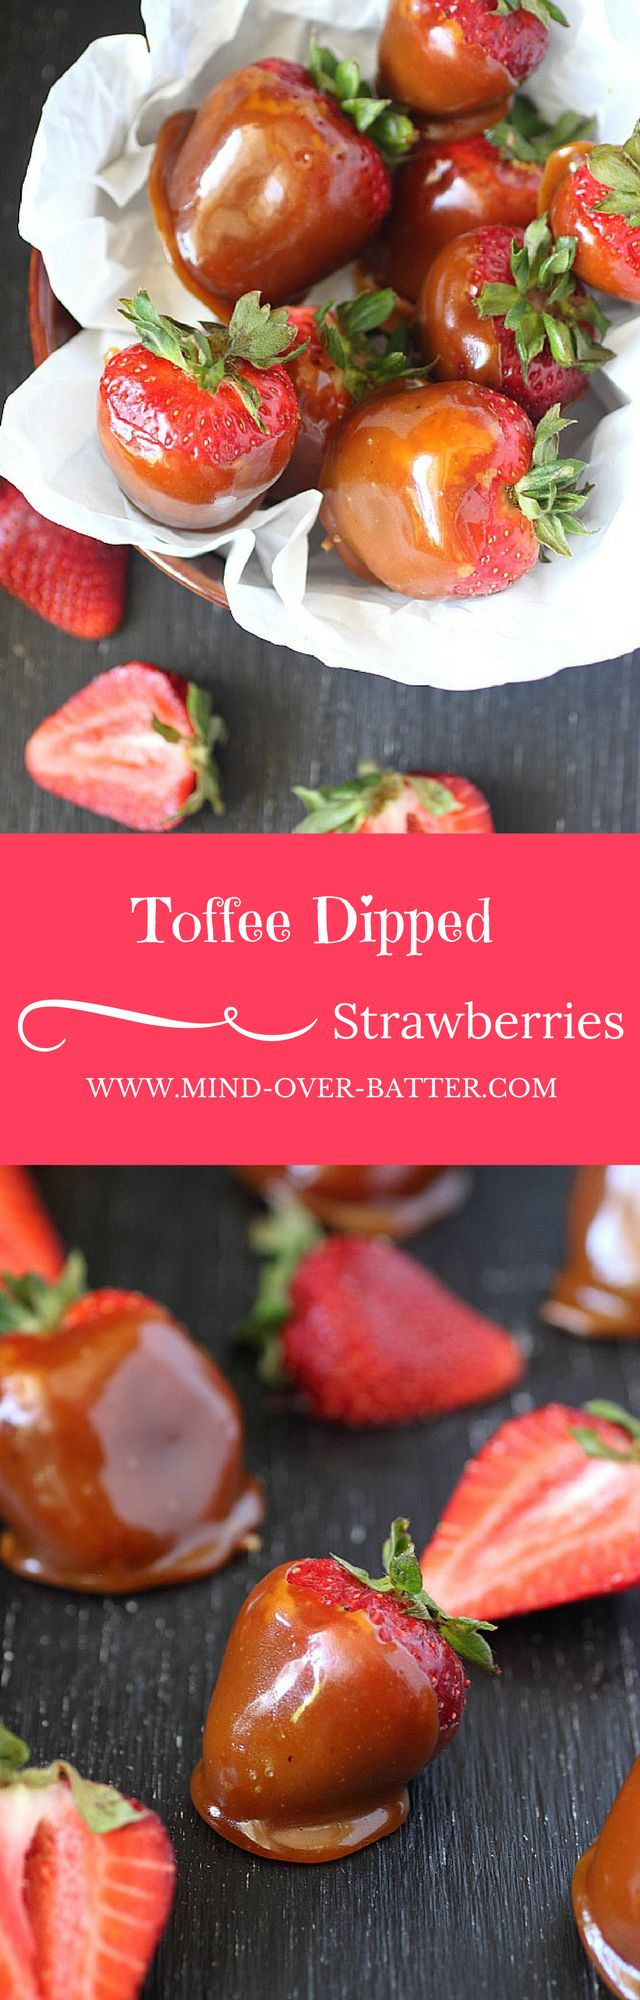 Toffee Covered Strawberries -- www.mind-over-batte…